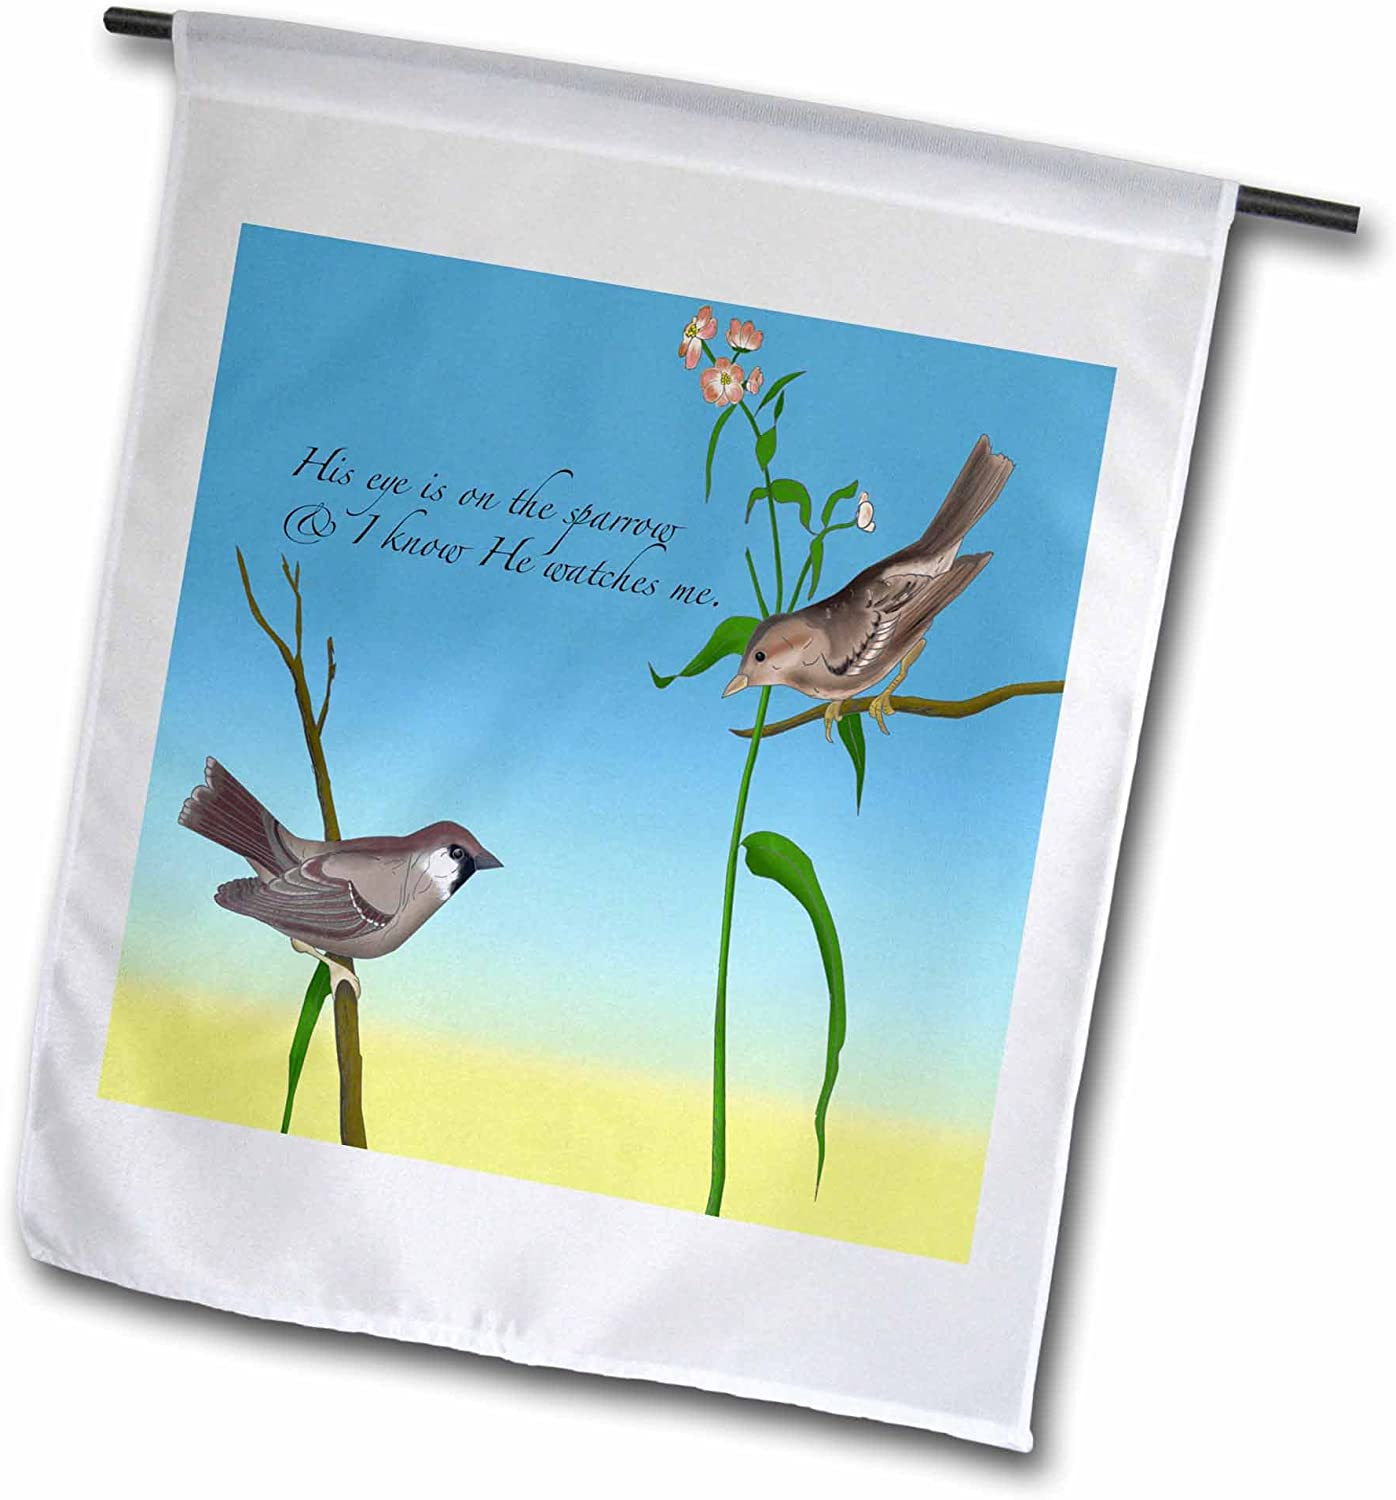 3dRose fl_184179_1 His Eye is on The Sparrow, Gospel Hymn Illustrated with Two Sparrows Garden Flag, 12 by 18-Inch